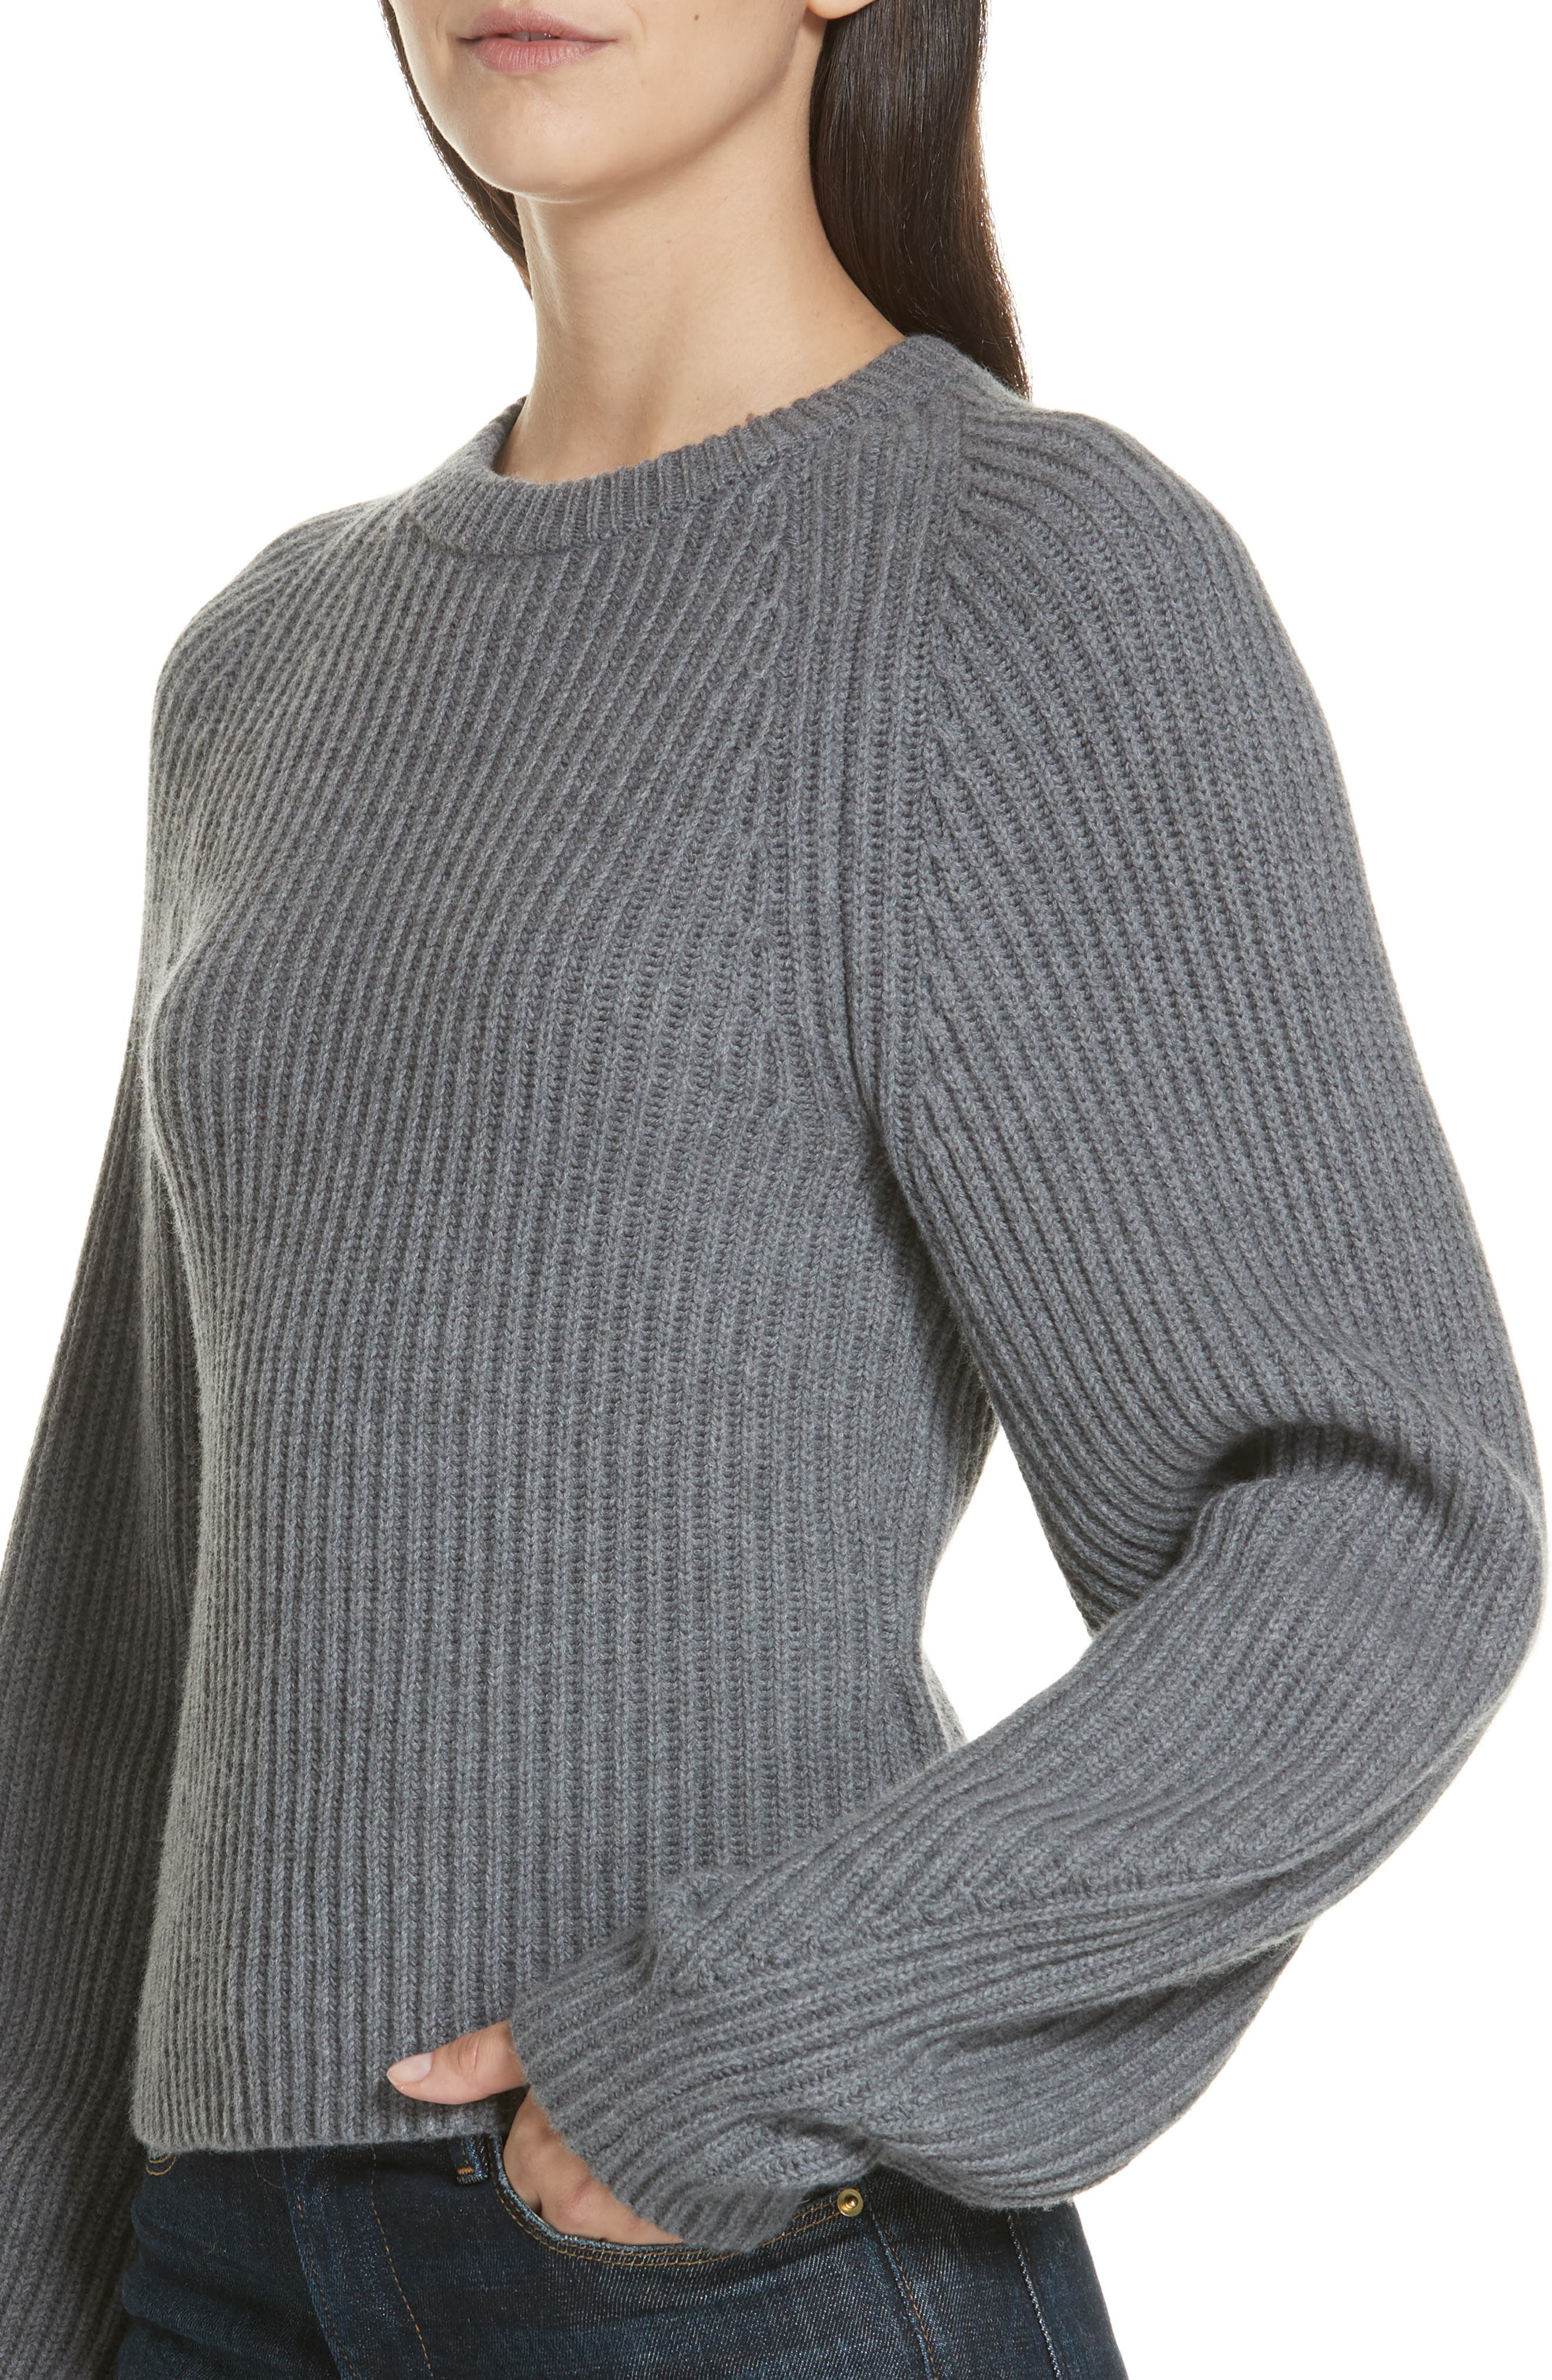 Sculpted Sleeve Shaker Stitch Merino Wool Sweater,                             Alternate thumbnail 4, color,                             CHARCOAL